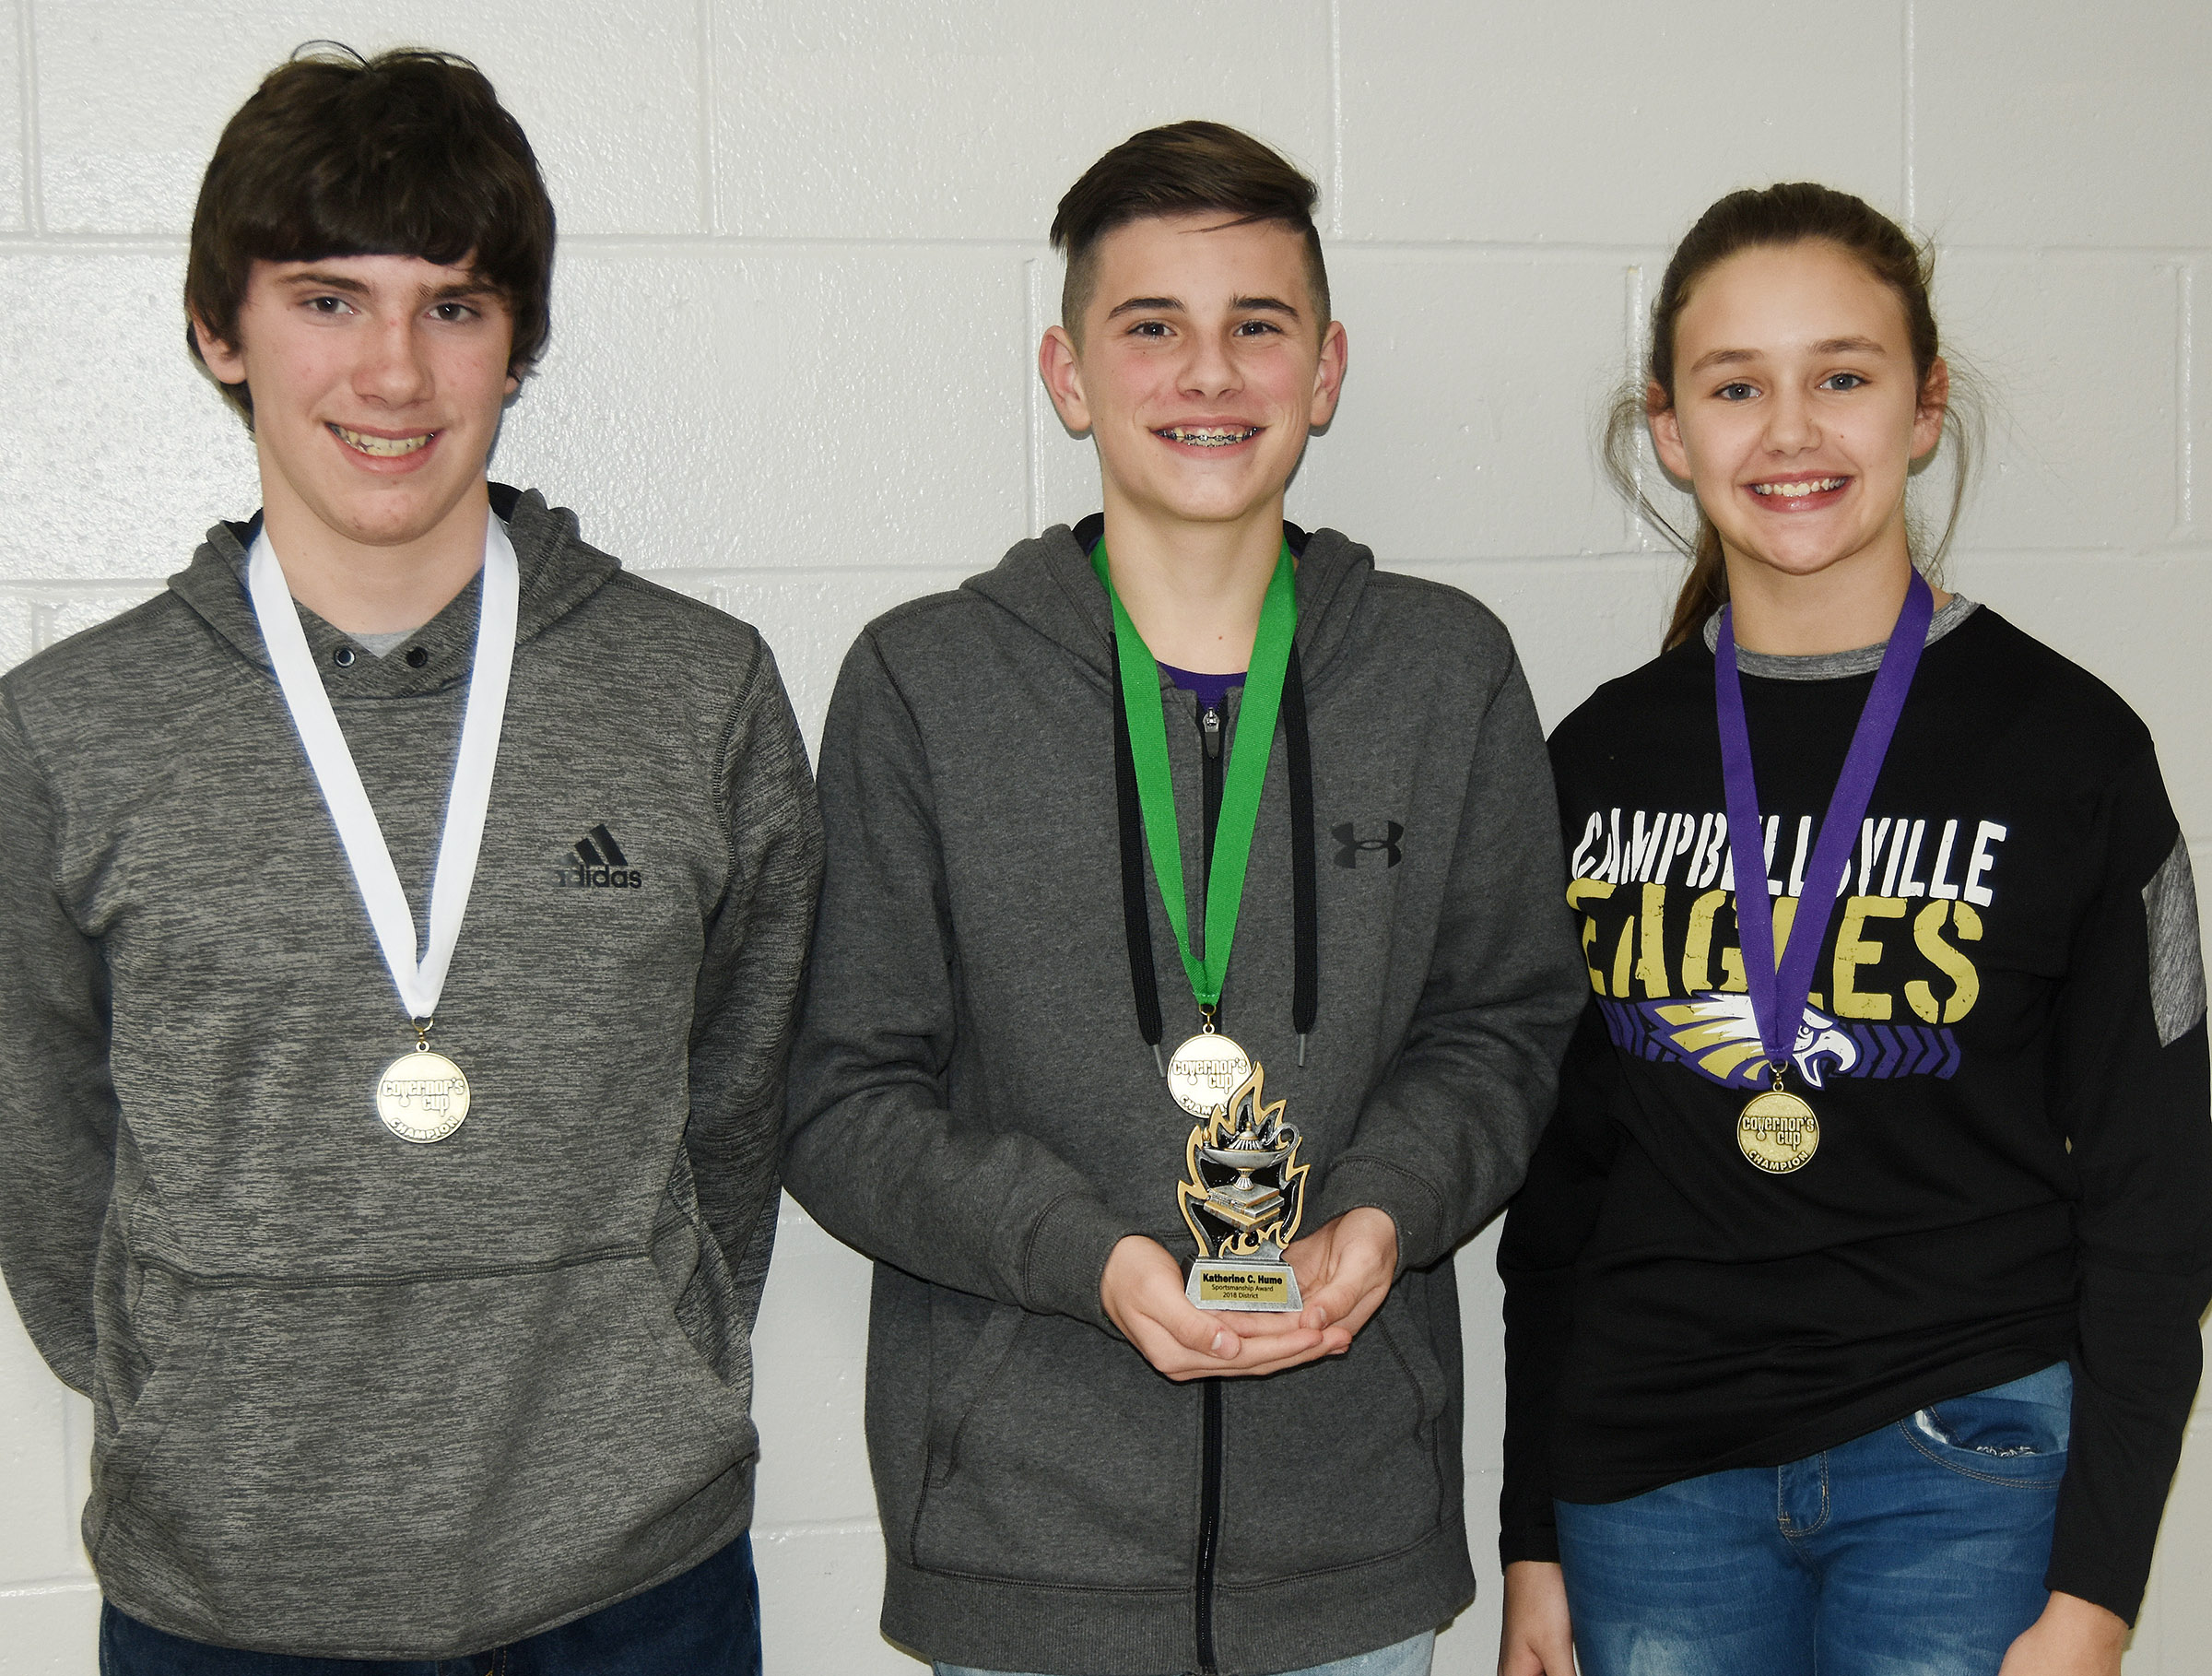 CMS academic team members won several awards at District Governor's Cup competition. Eighth-grader Peyton Dabney, at left, won third place on the social studies exam. Sixth-grader Isaac Garrison, center, and seventh-grader Haylee Allen tied for fourth place on the math written exam. MaCayla Falls, a seventh-grader, not pictured, won third place on the science exam. In written composition, Allen received third place and sixth-grader Karlie Cox, not pictured, won fifth place.